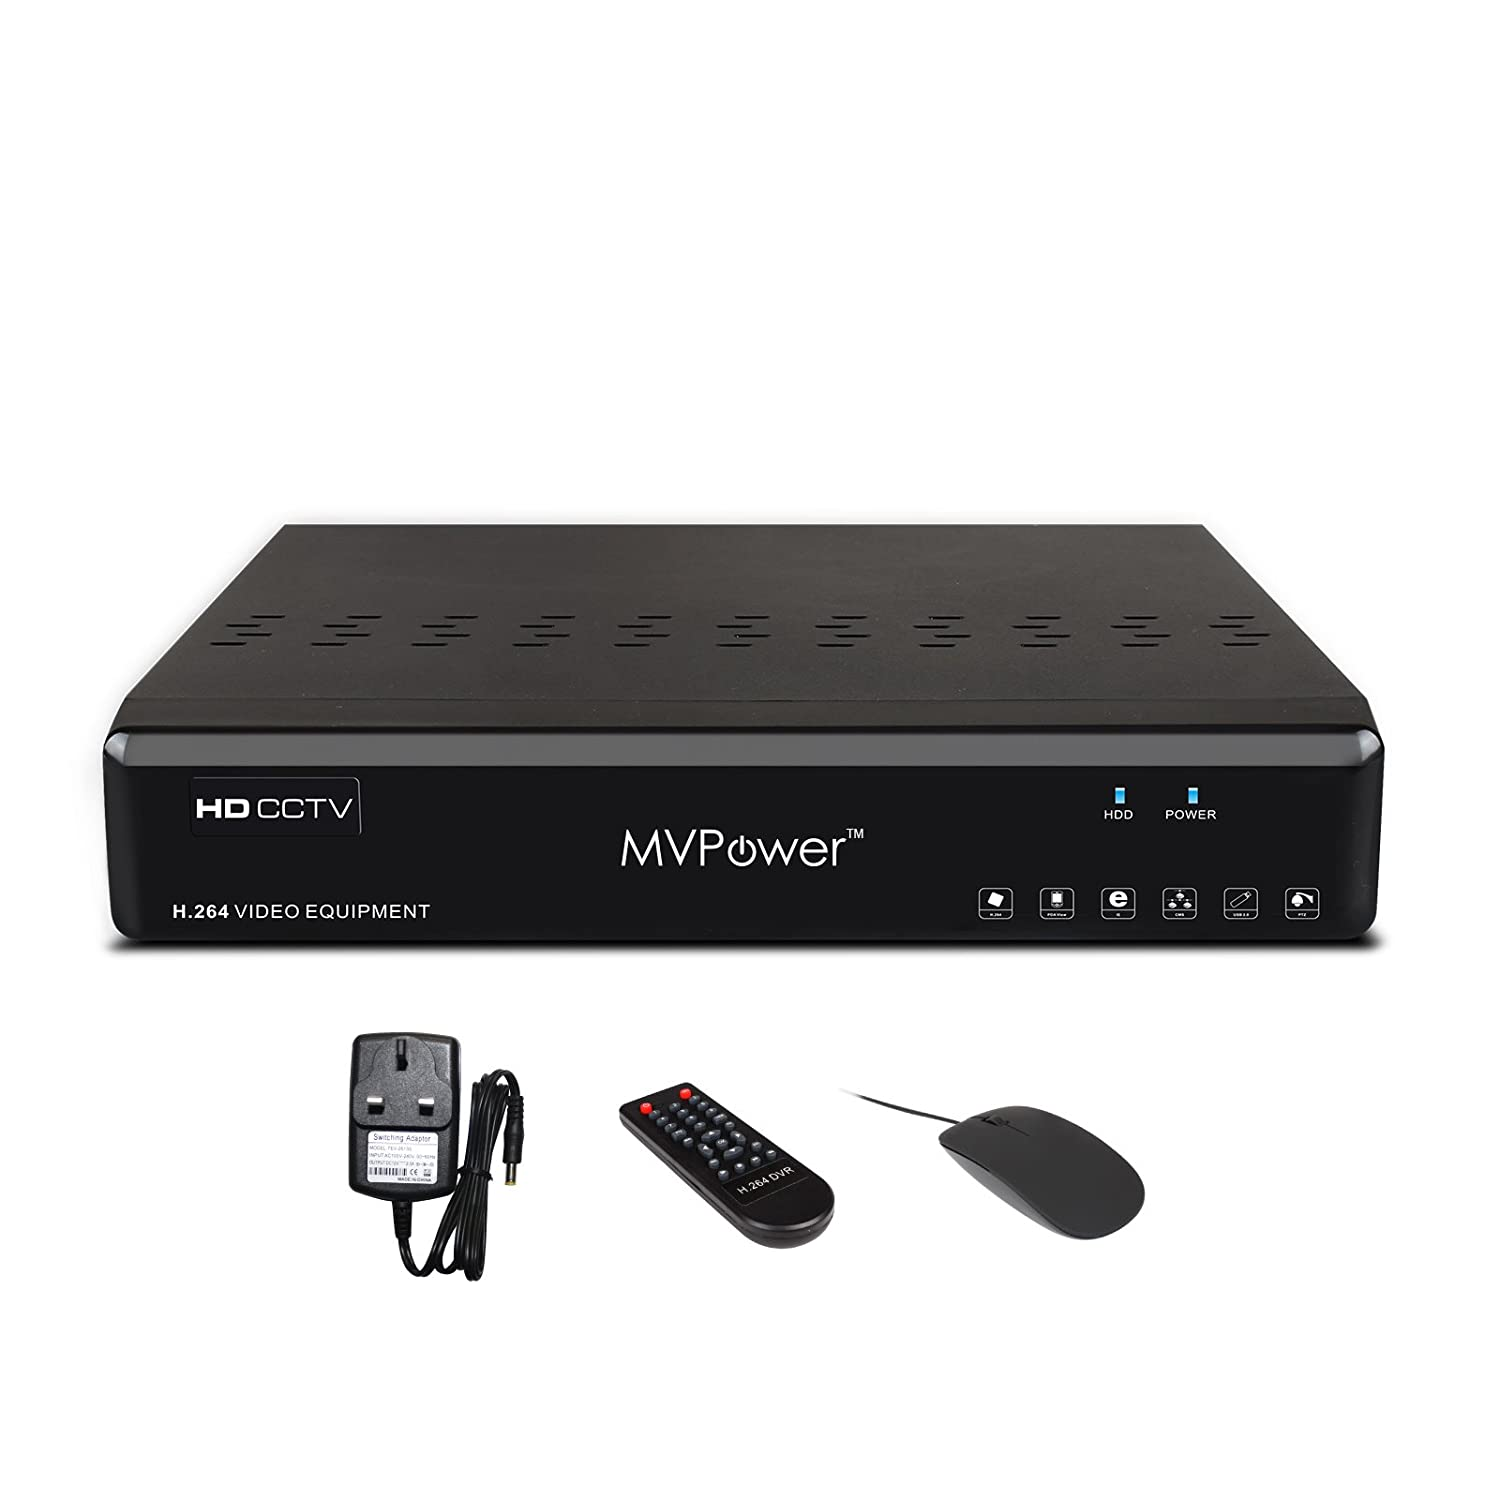 Mvpower 8 Channel Security DVR Full D1 H.264 CCTV Real-time Network Digital  Video Recorder Mobile Motion Detection,P2P HDMI Alarm Email for CCTV ...